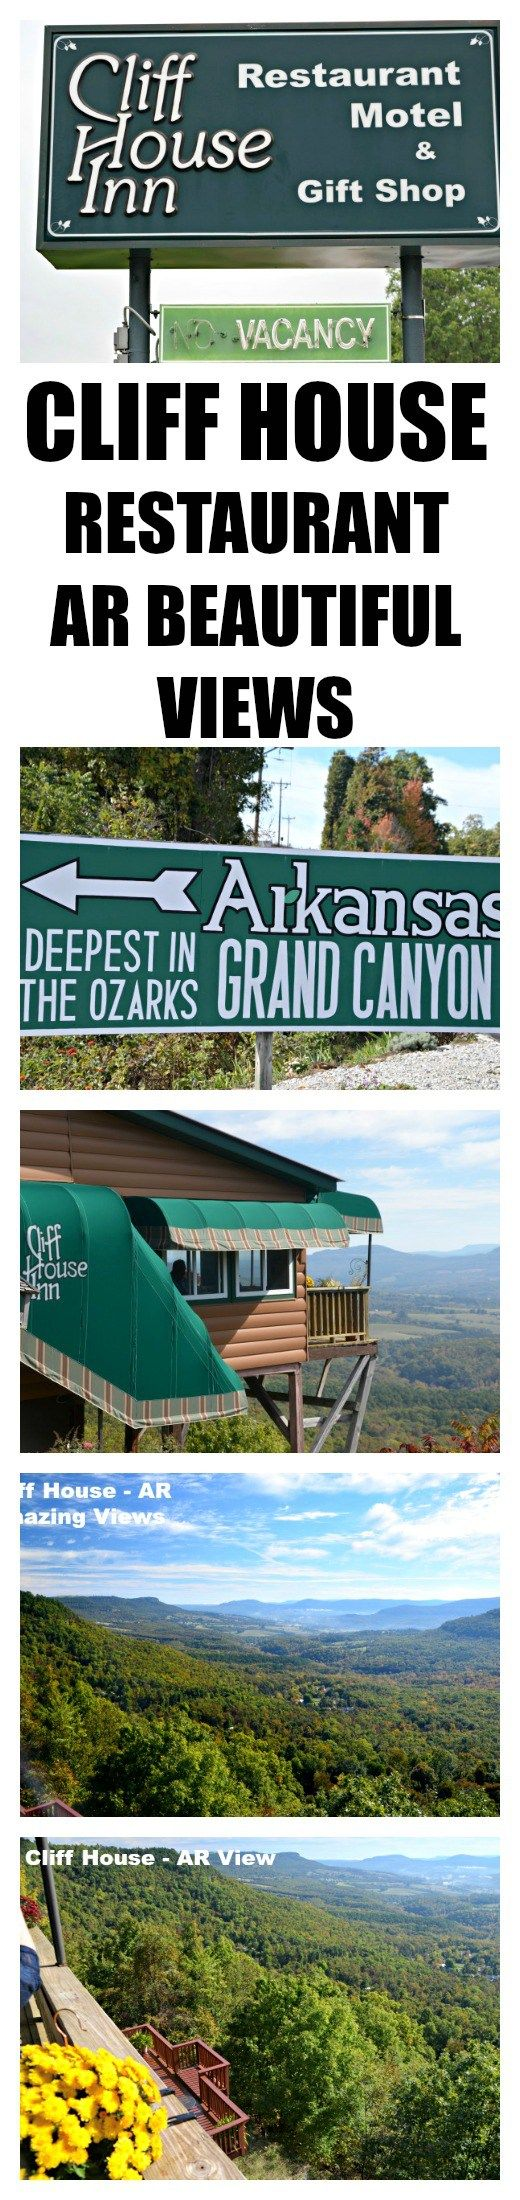 How to get Amazing Views and Food in Arkansas? Cliff House Restaurant